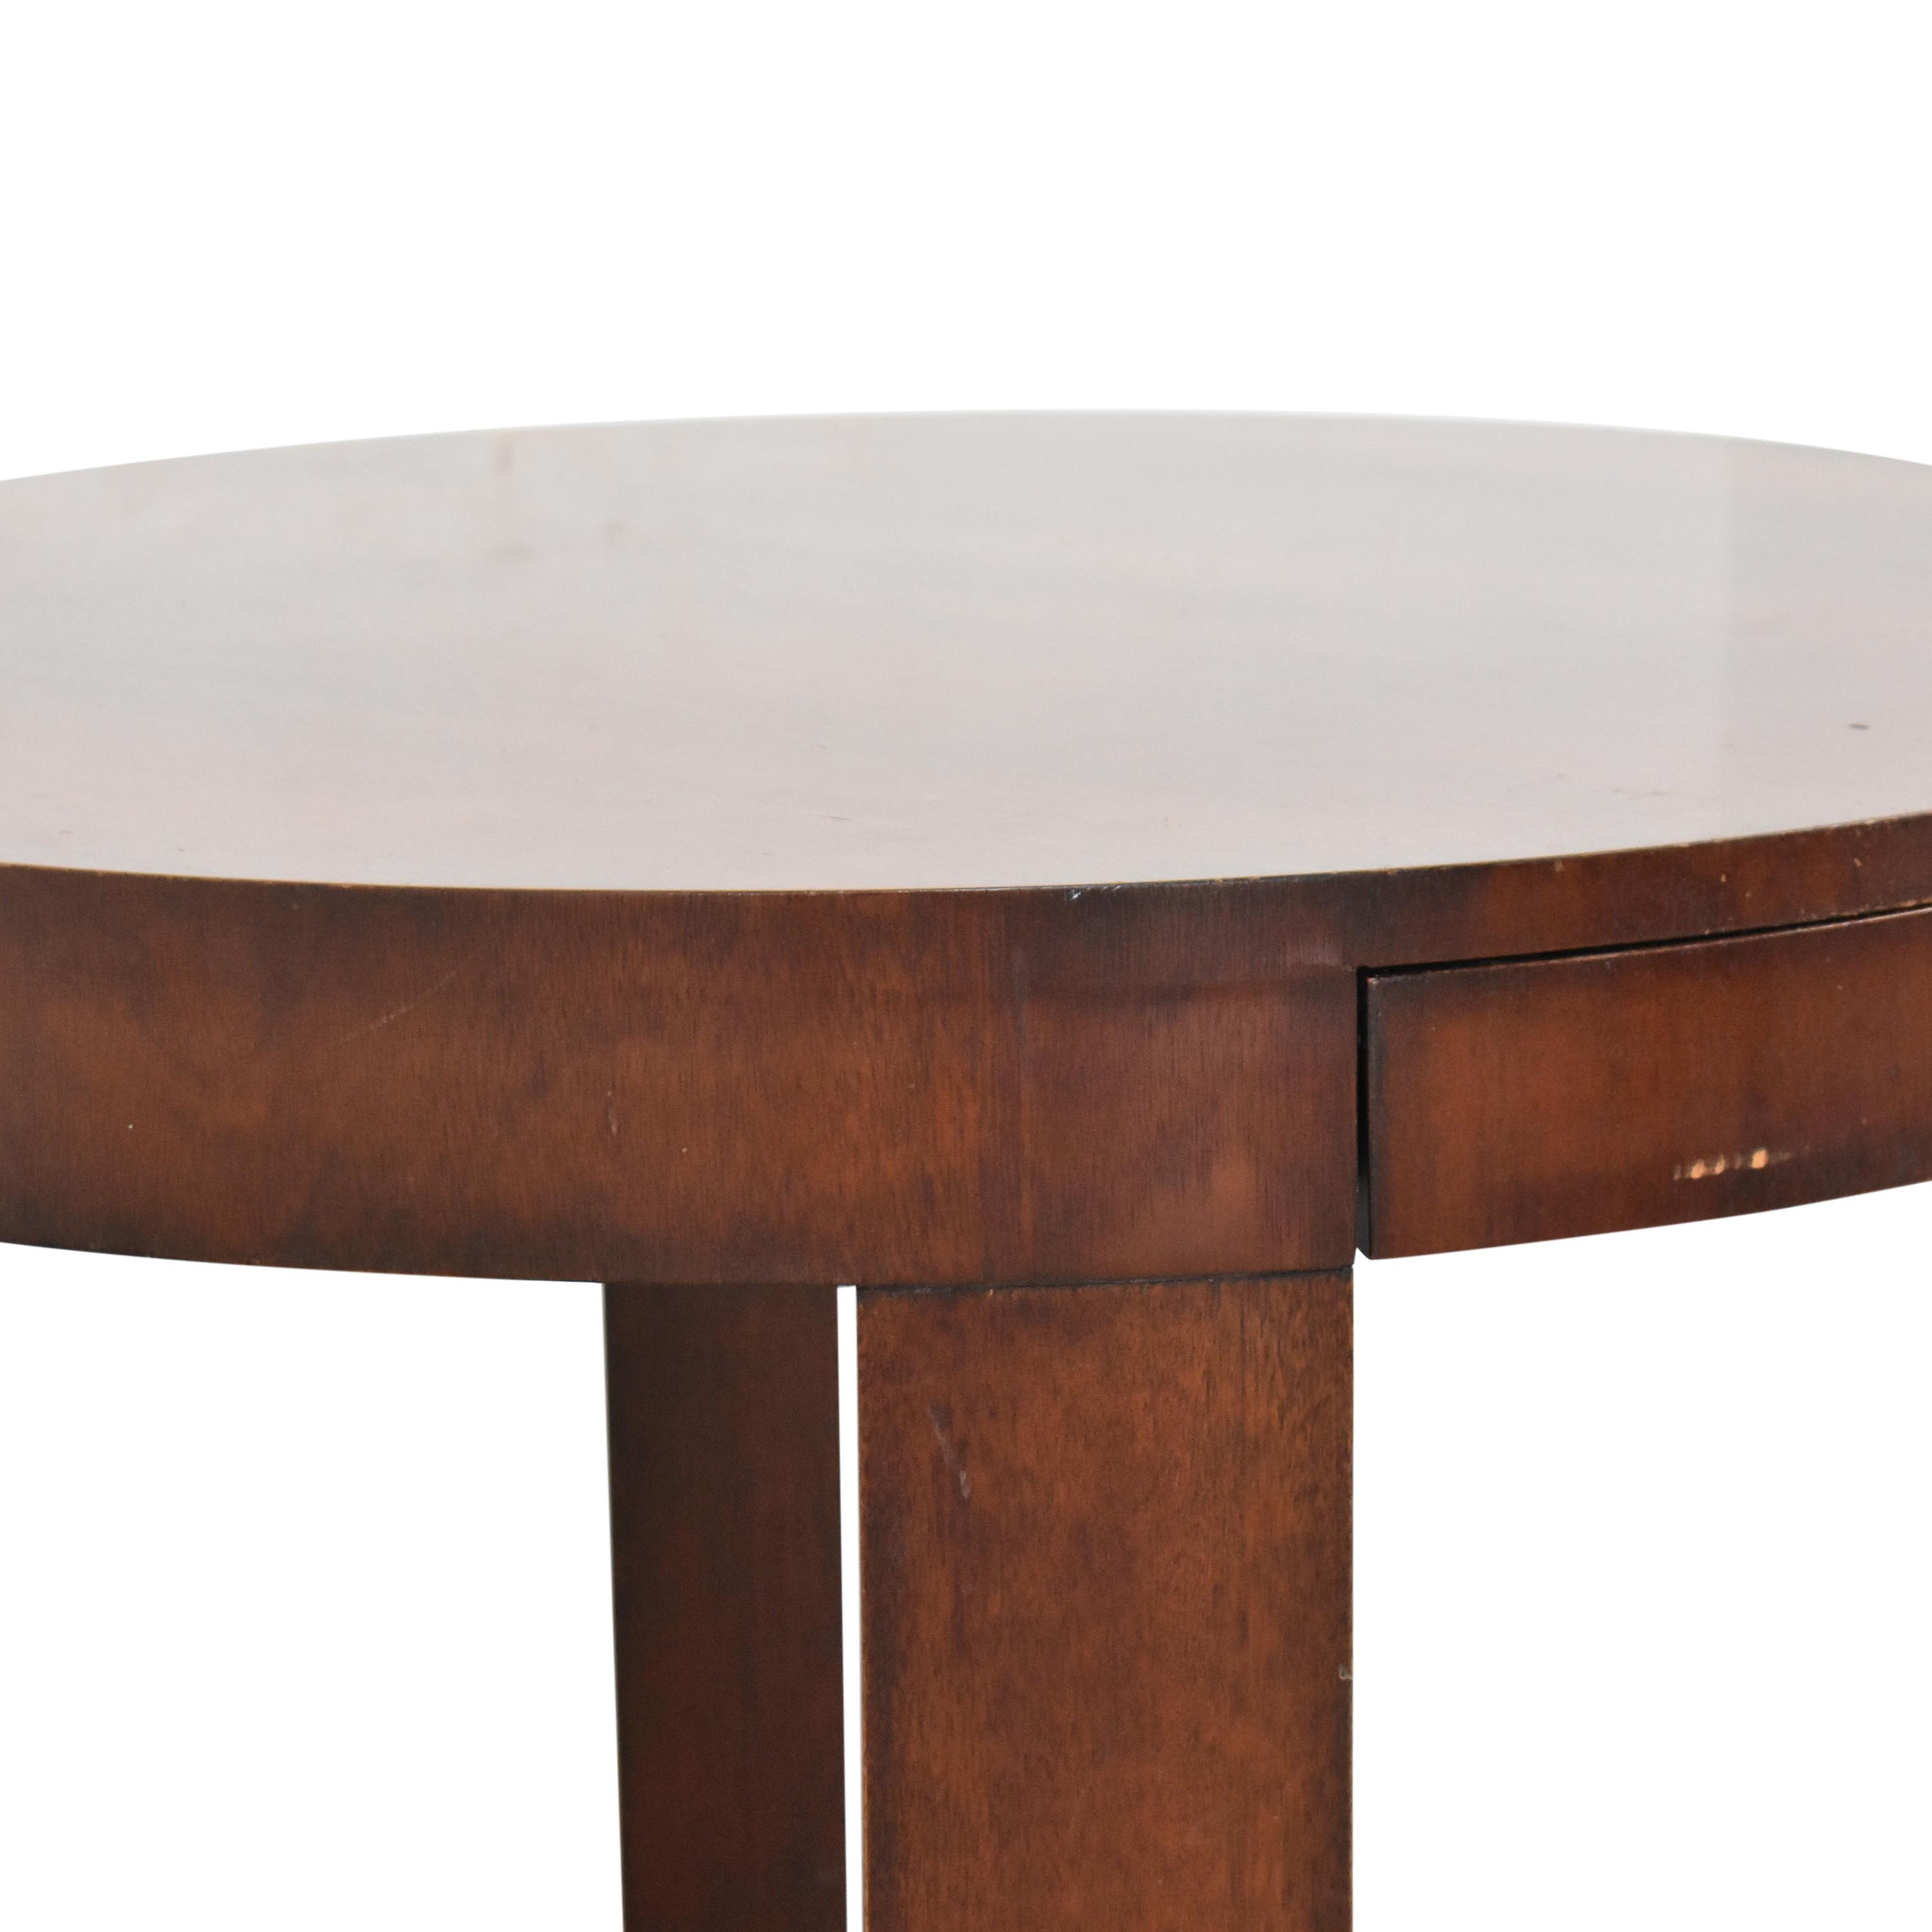 Ralph Lauren Home Ralph Lauren Home Round Single Drawer End Table for sale